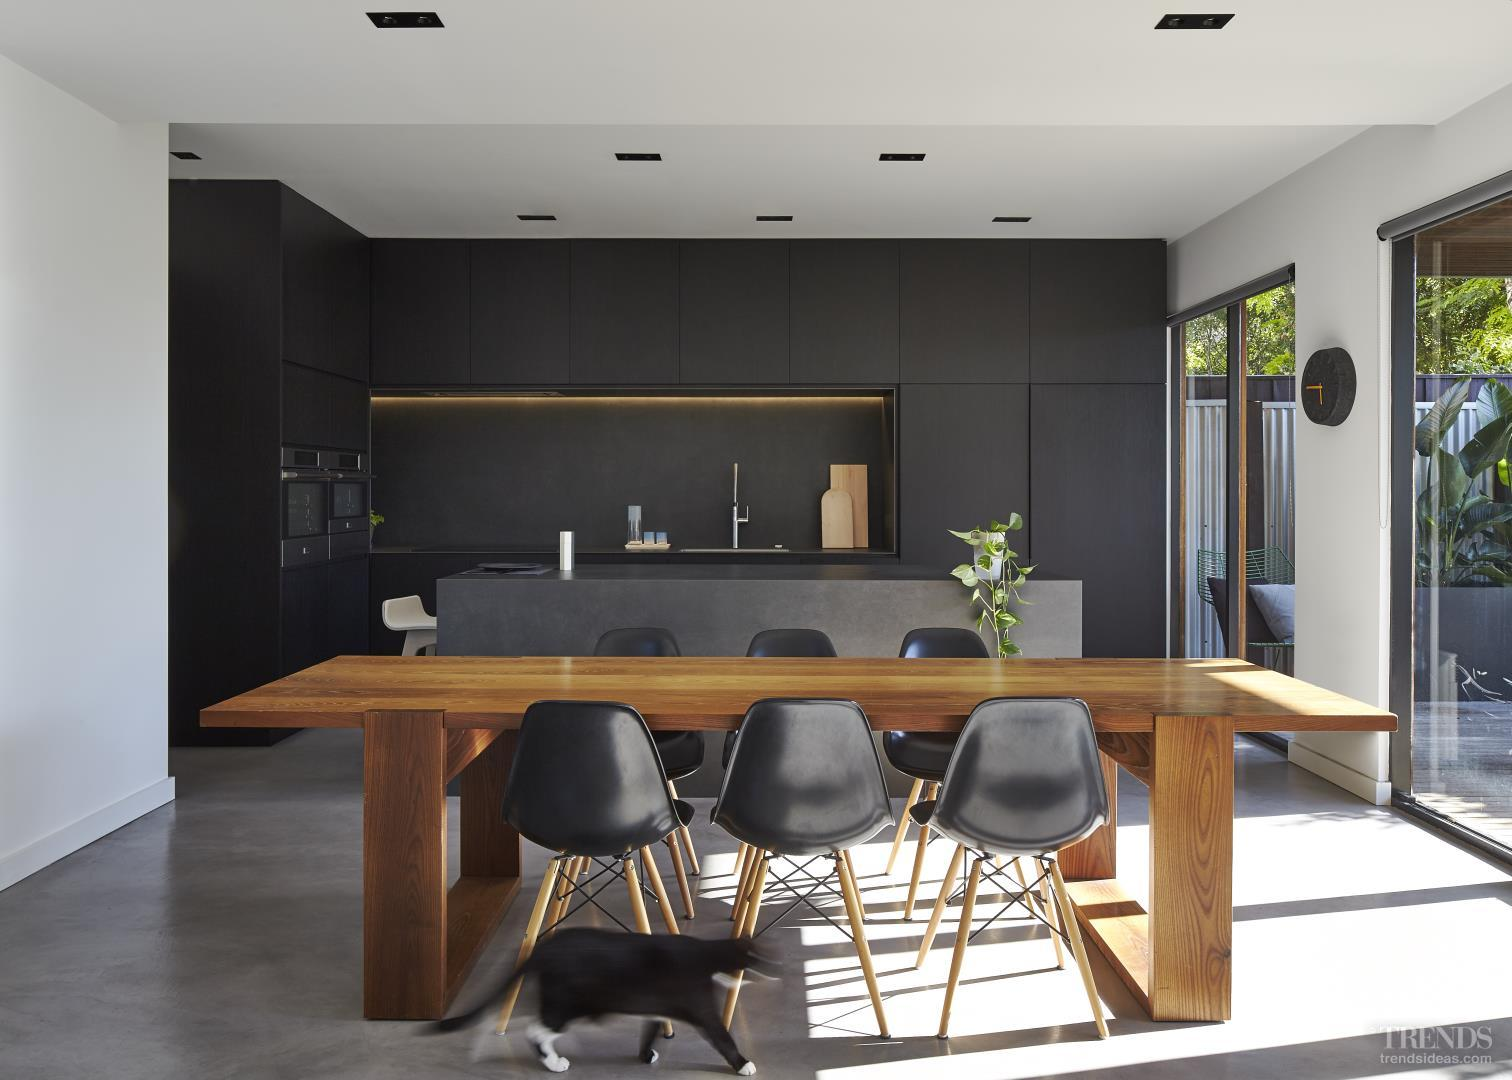 Sleek Black Kitchen By Owner Architect With Black